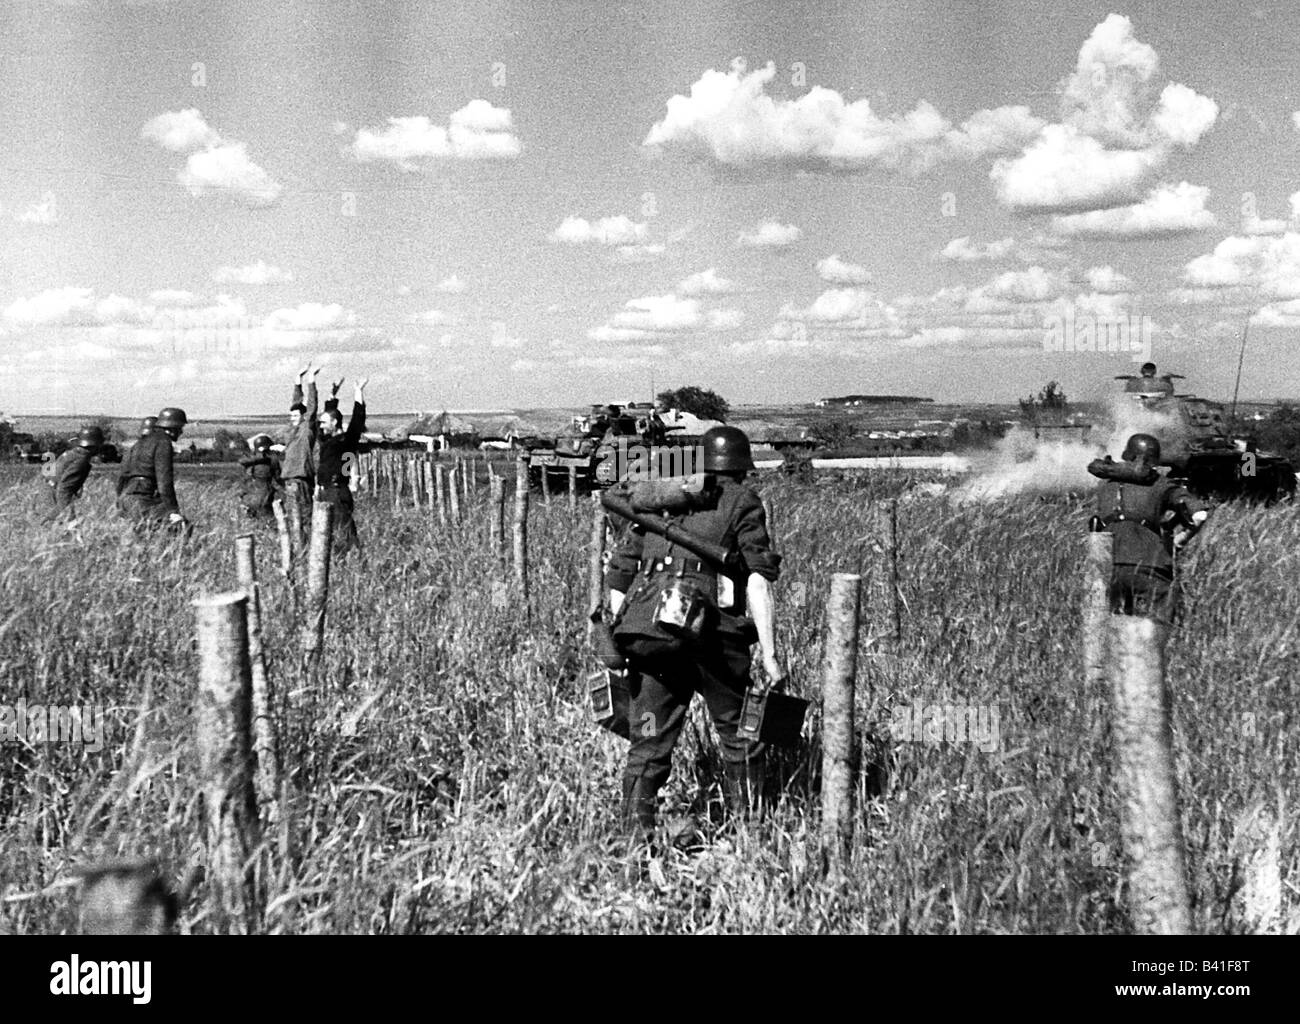 events, Second World War / WWII, Russia 1941, German advance, infantry following tanks, propaganda photo, Additional - Stock Image